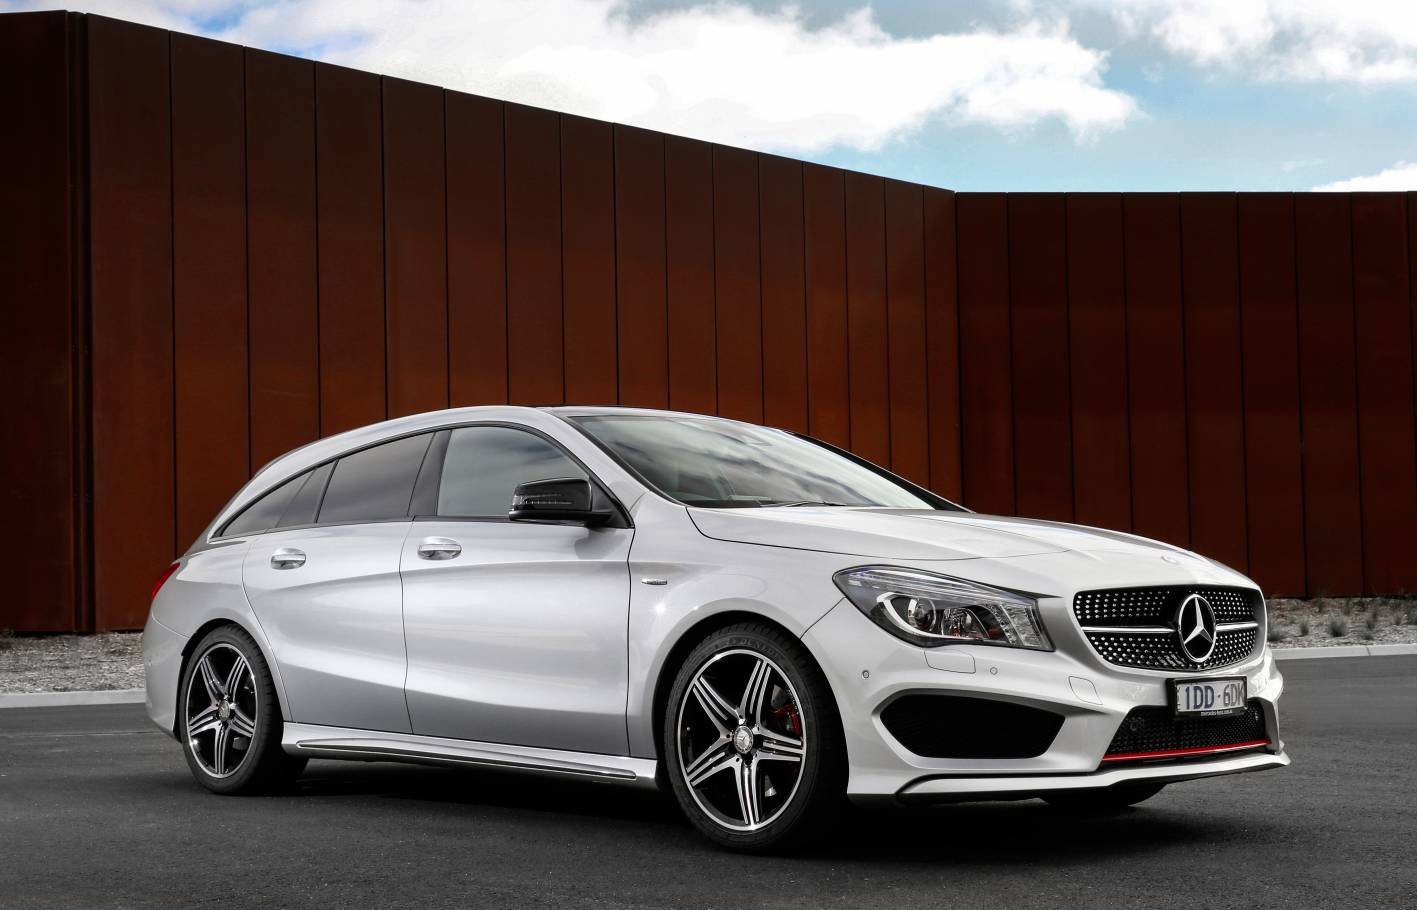 2015 mercedes benz cla shooting brake review practical motoring. Black Bedroom Furniture Sets. Home Design Ideas